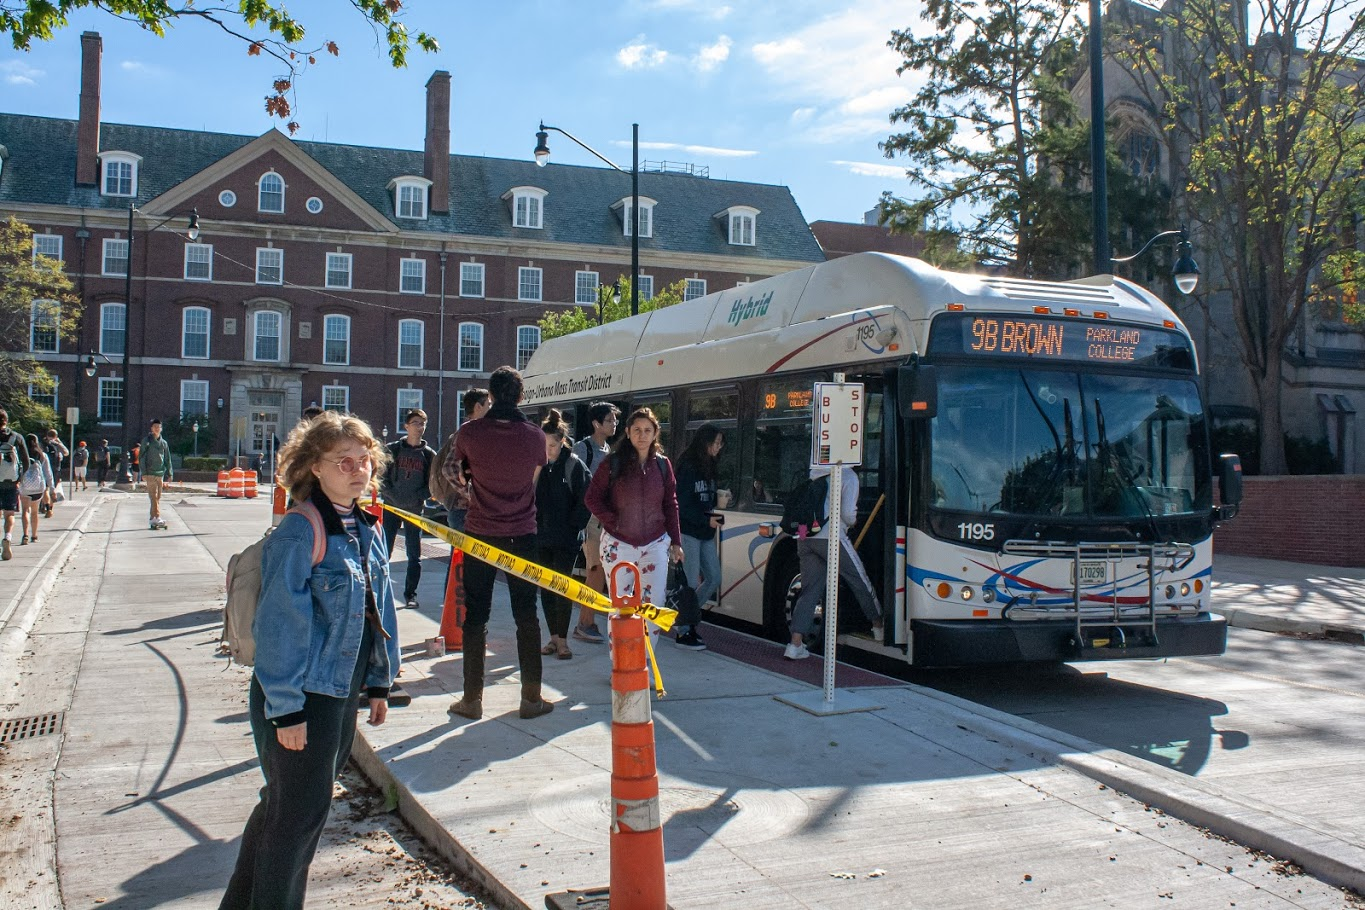 University students disembark from the 9B Brown bus at the new Wright Street bus island on Friday. The northbound 1 Yellow, 13 Silver, 22 Illini, 9 Brown, 4 Blue and 5 Green buses have been running on Wright Street since Sept. 24.